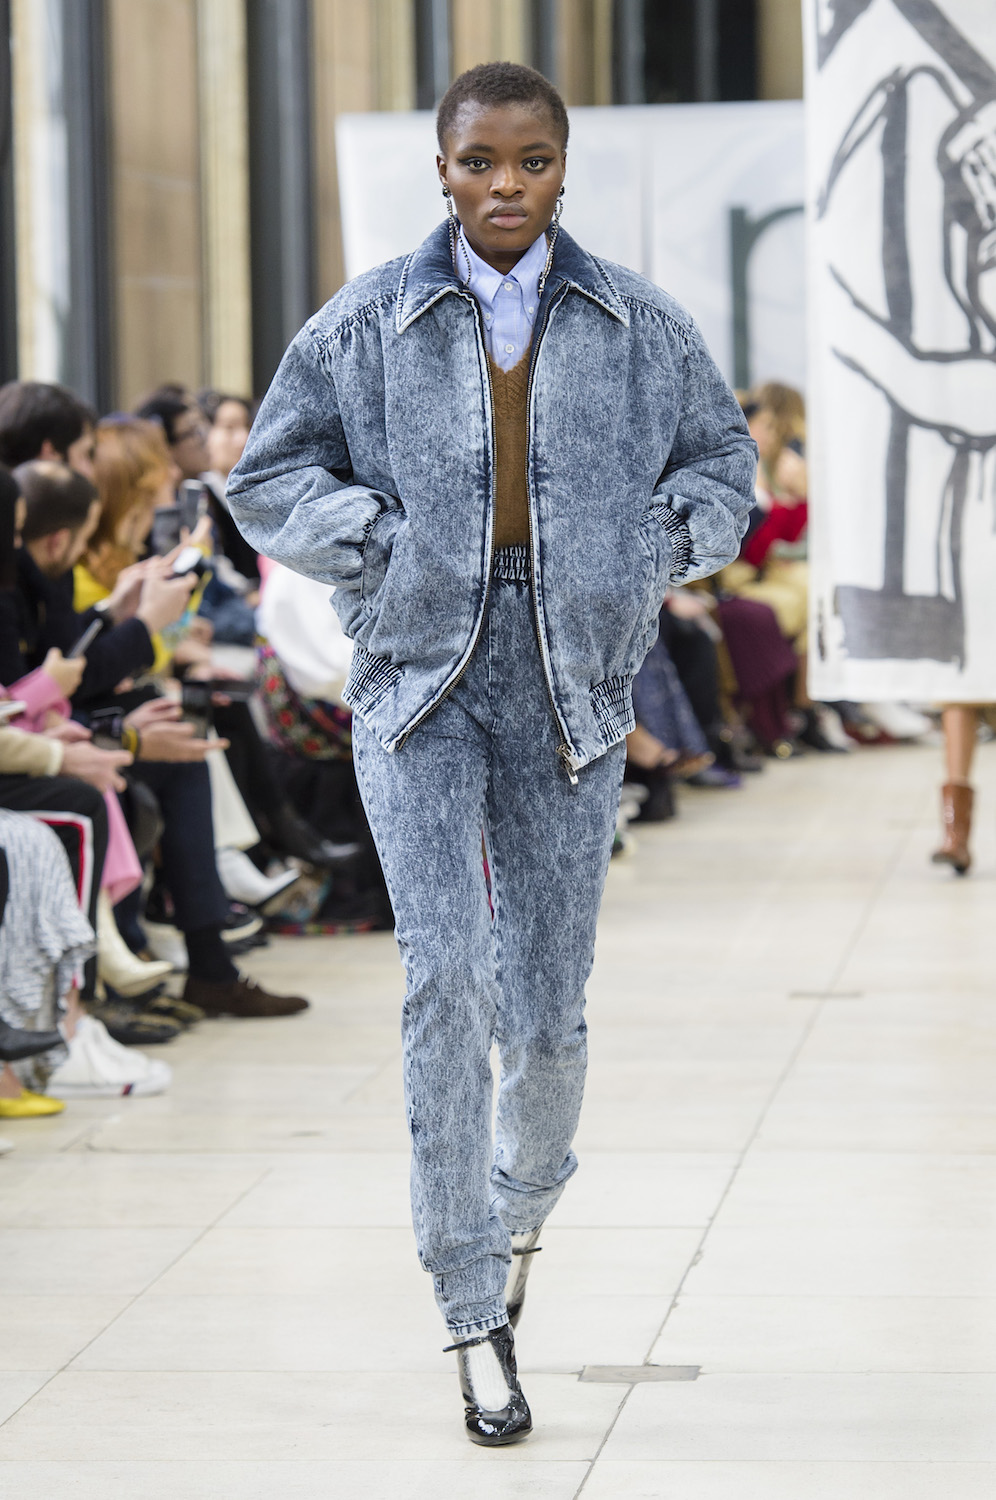 ca4bfc5e26 The 80s Are Making a Comeback at Miu Miu, Whether You Like It or Not